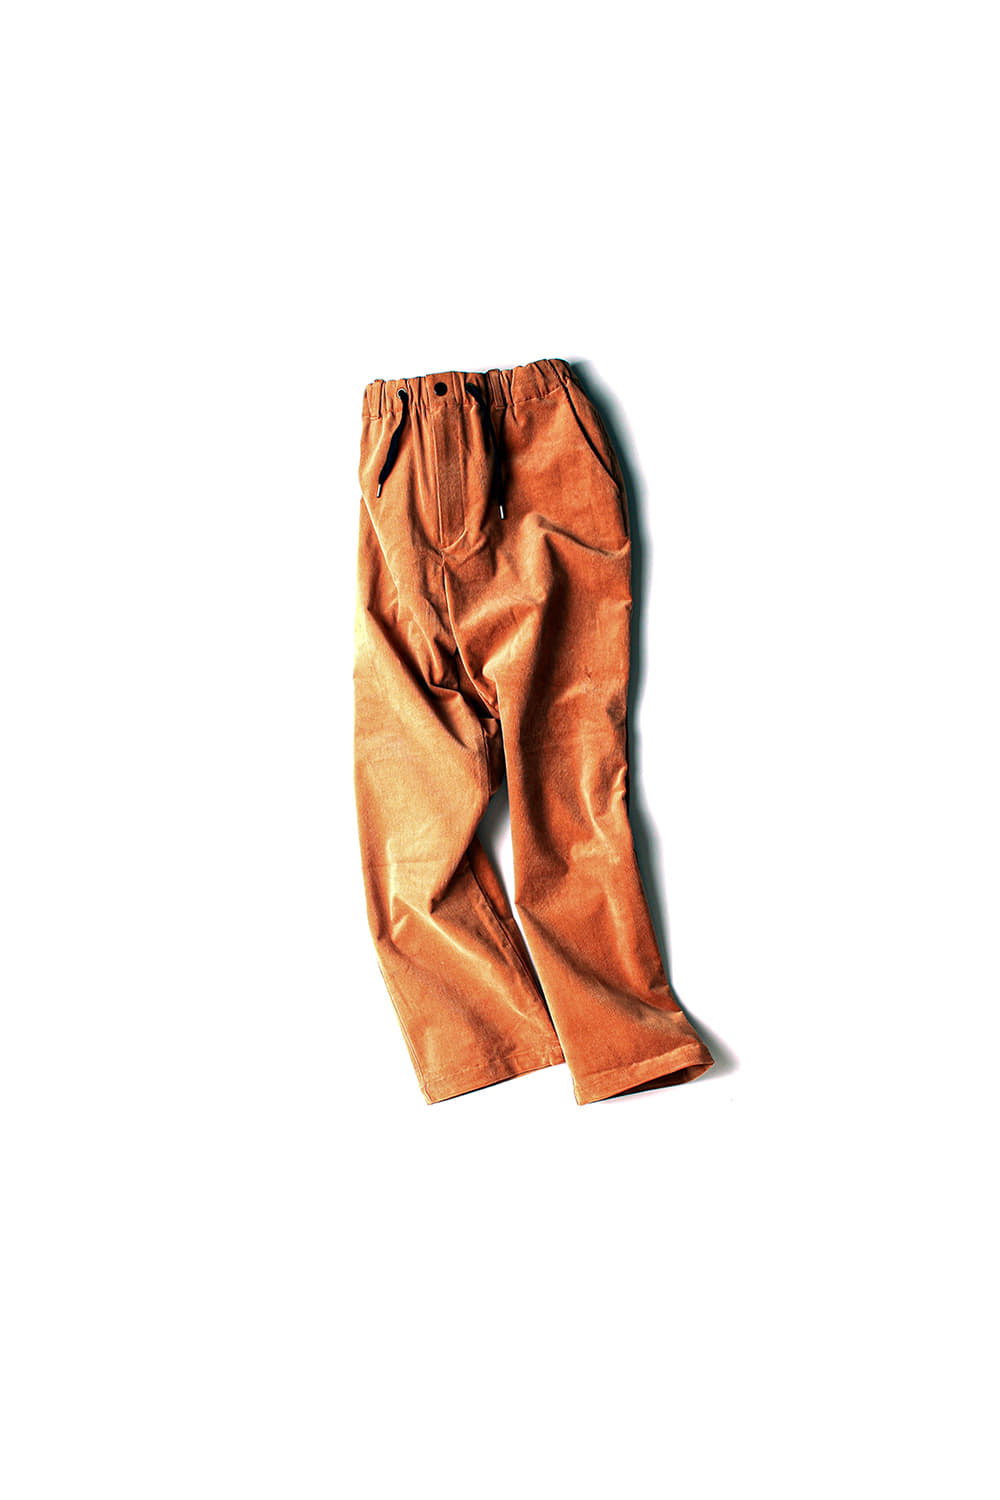 [Ourselves] CORDUROY TOOL PANTS (BR)